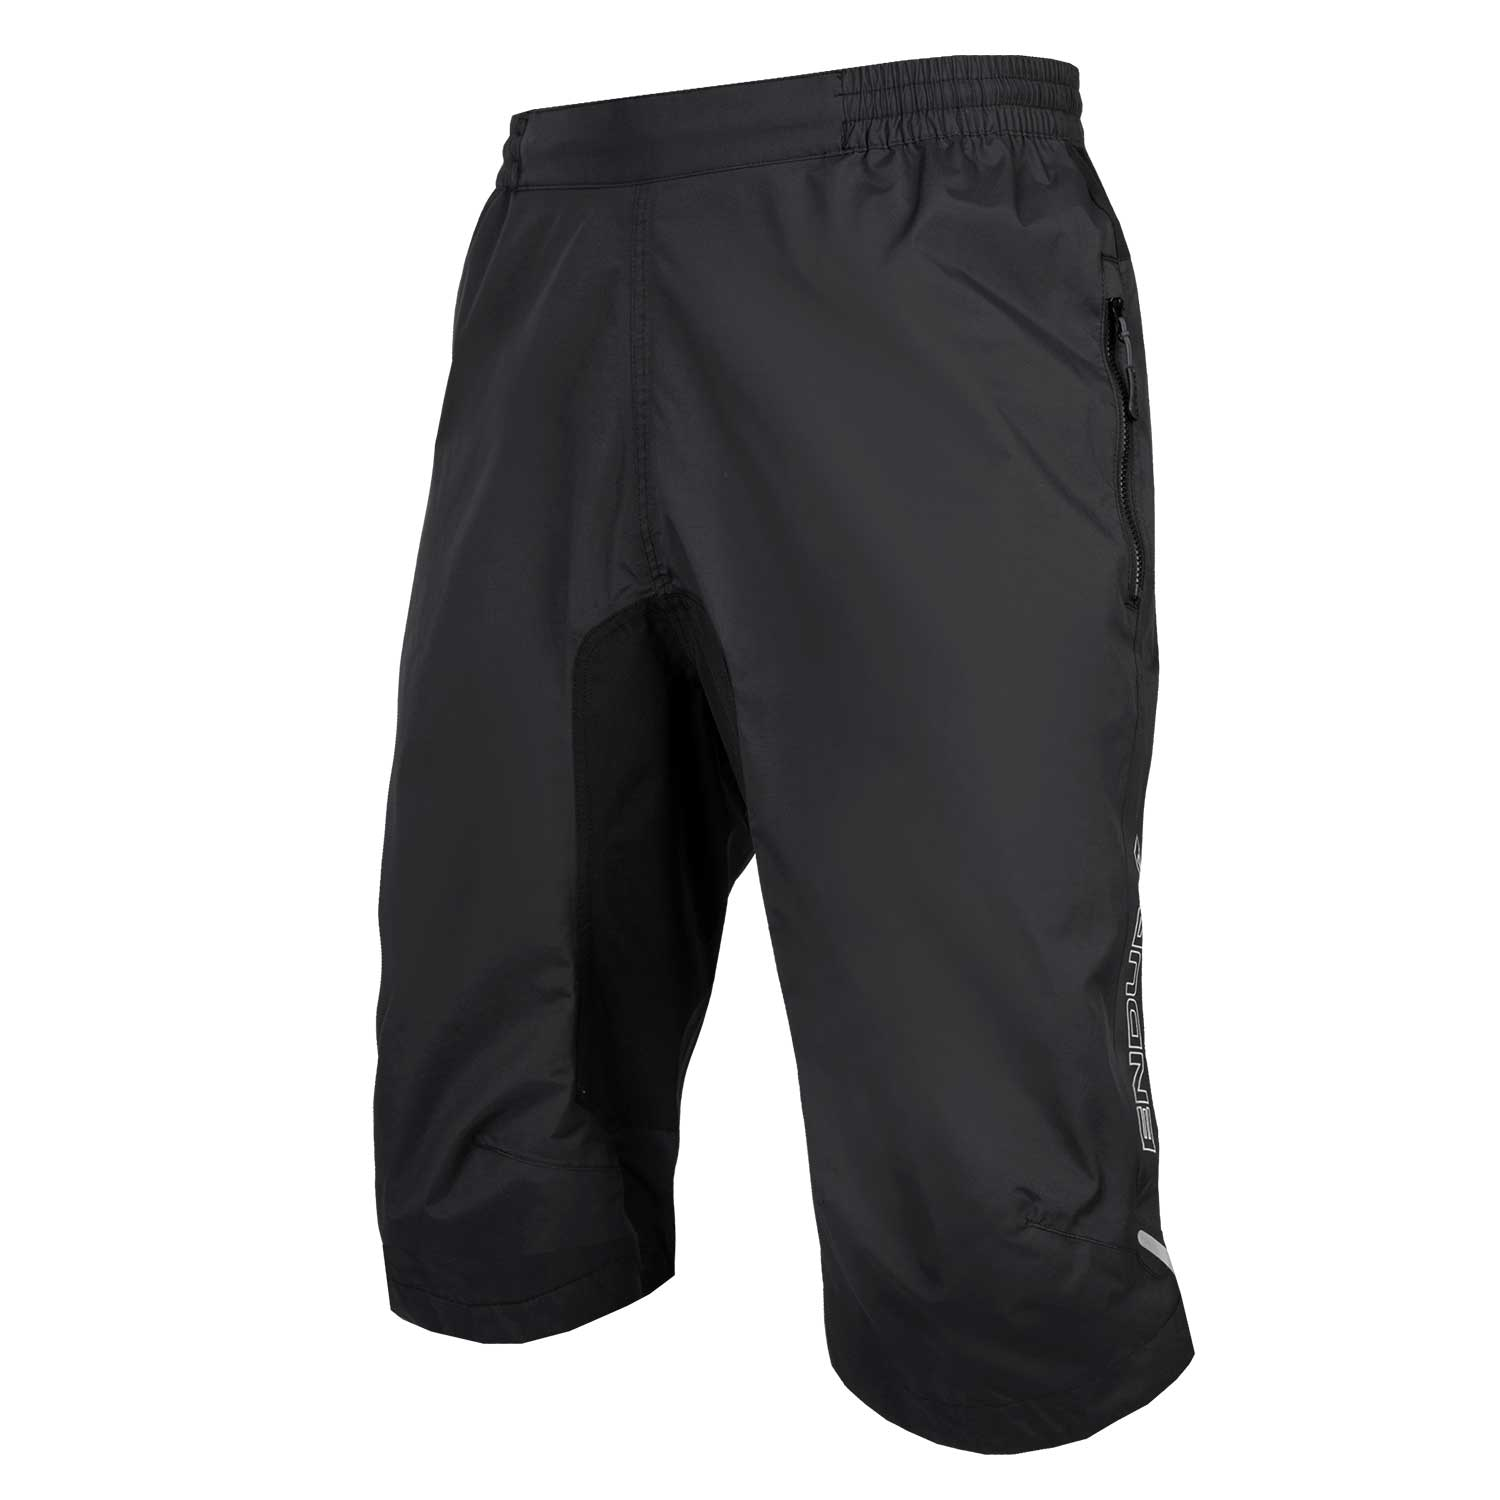 Endura Humvee waterproof shorts